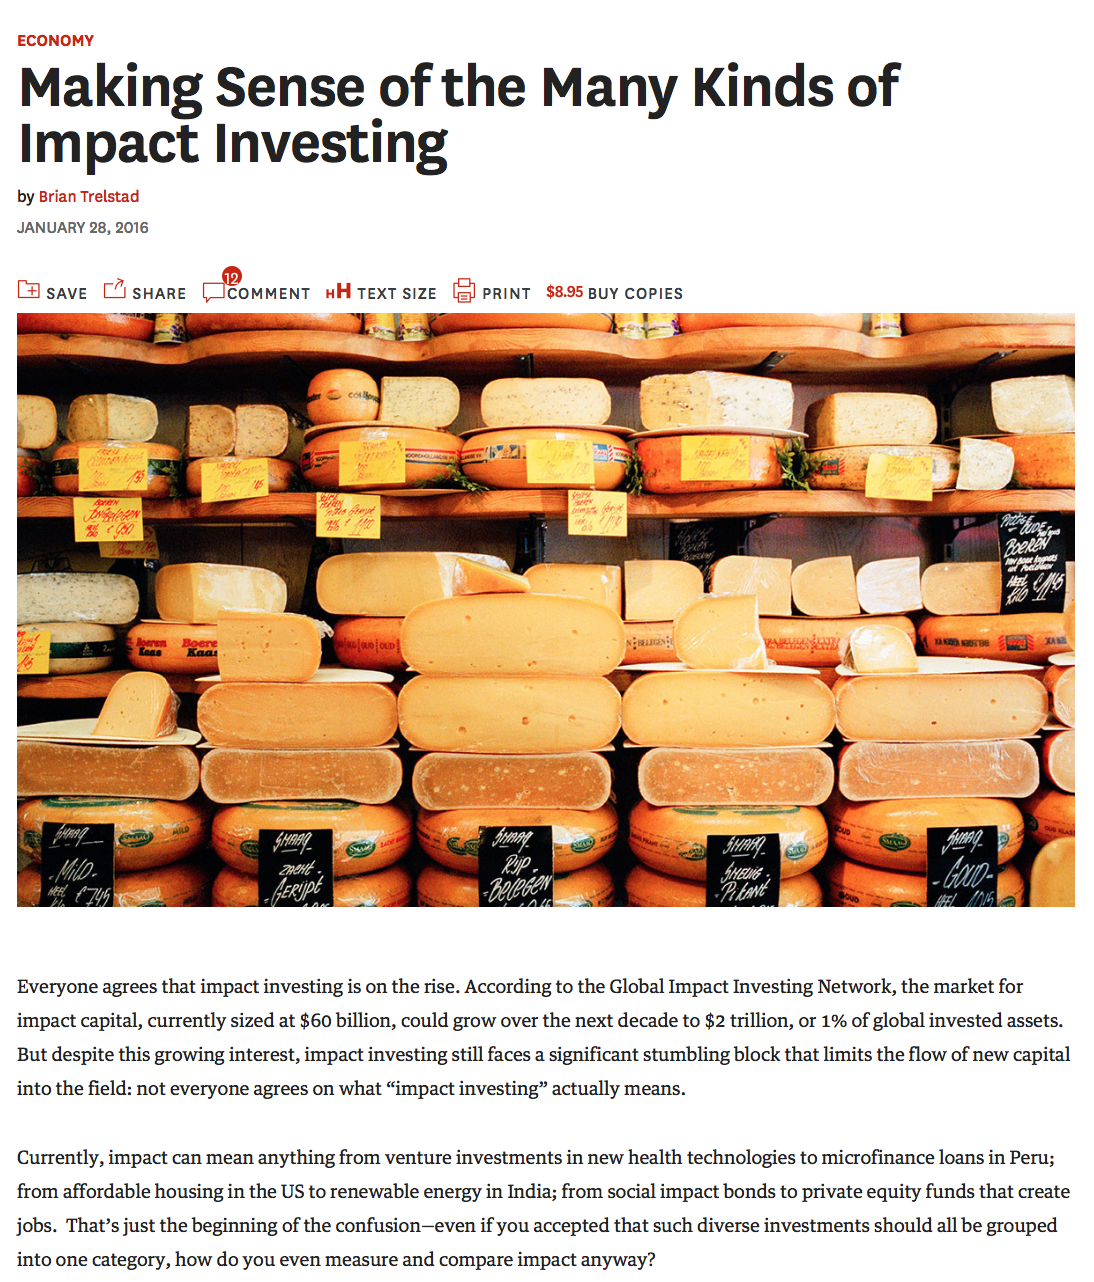 Making Sense of the Many Kinds of Impact Investing